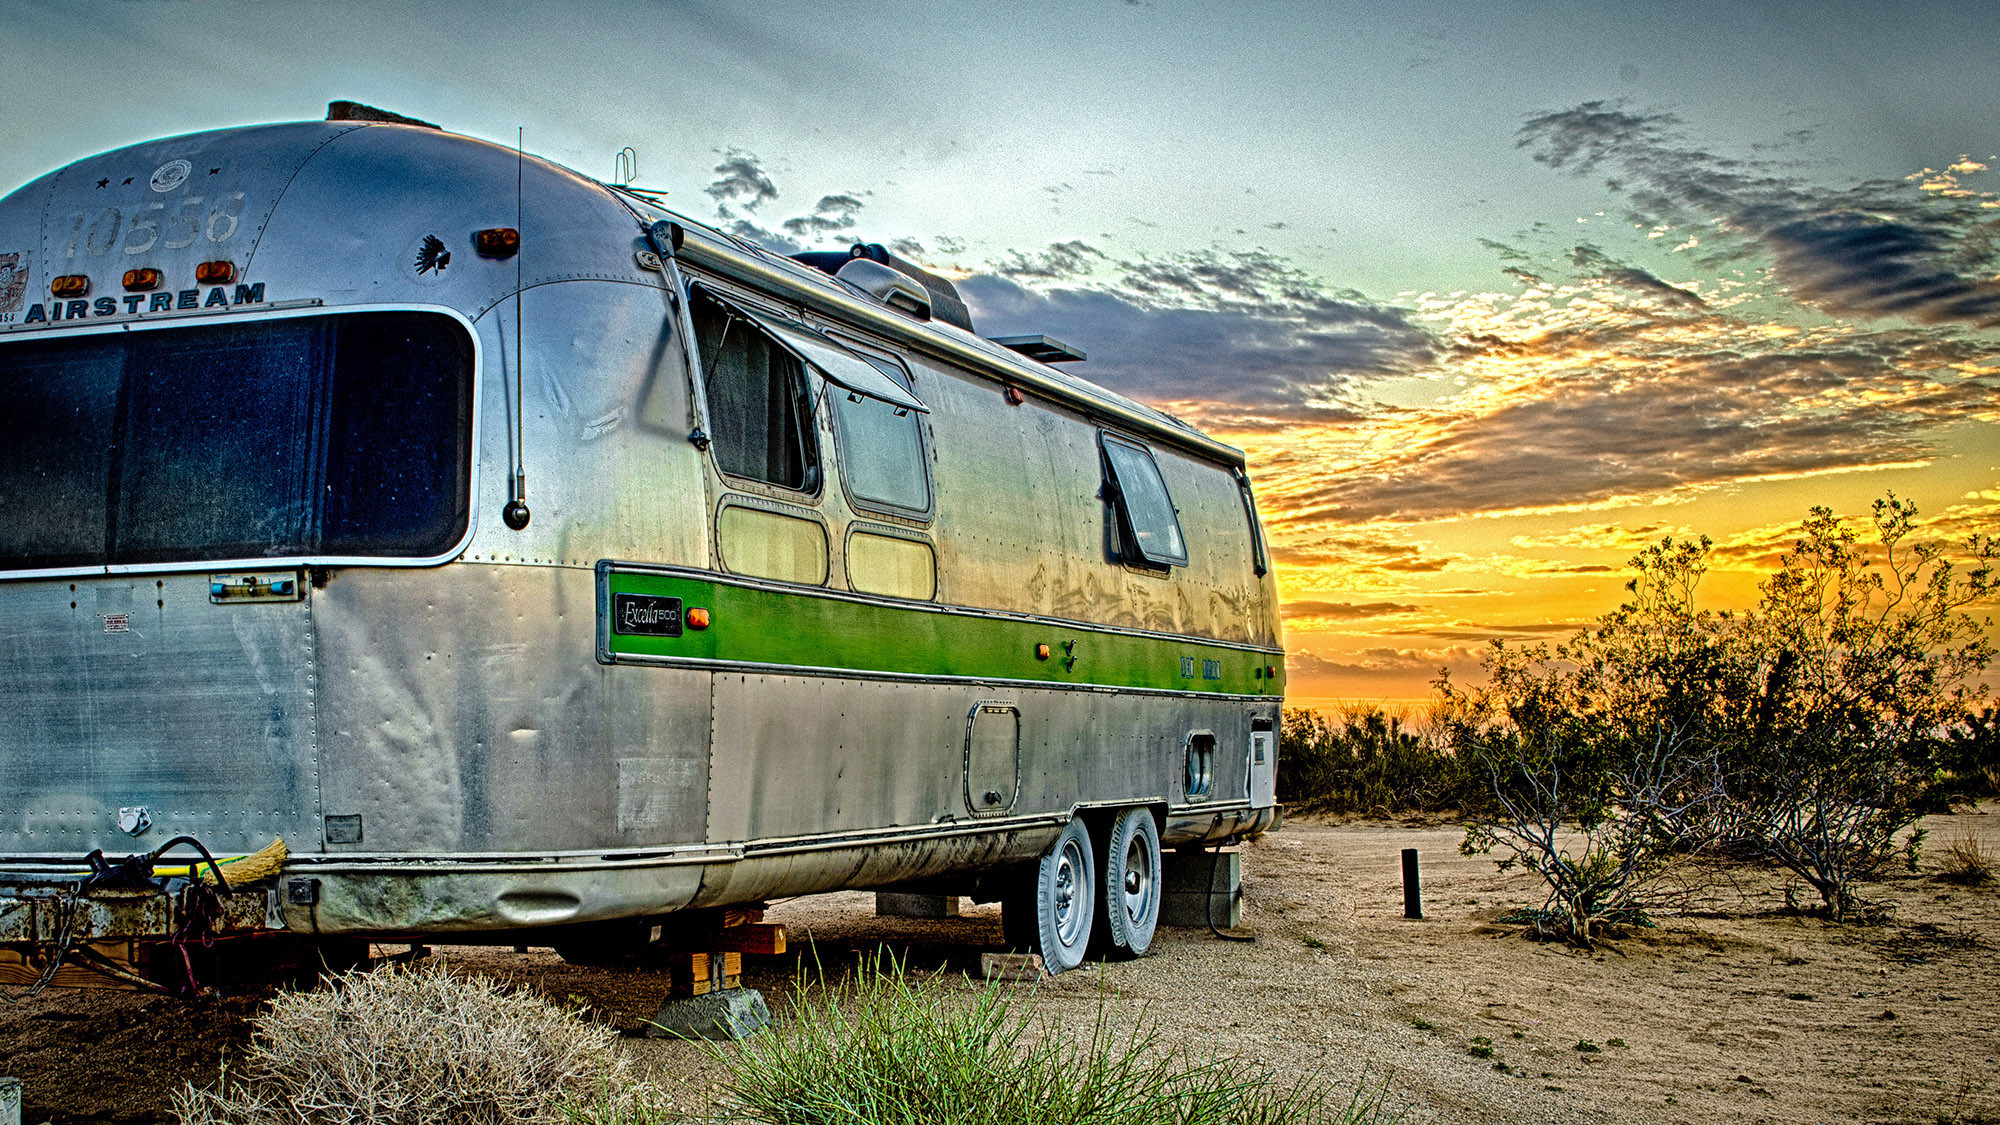 Airstream Trailer Hotel In The Southern California Desert